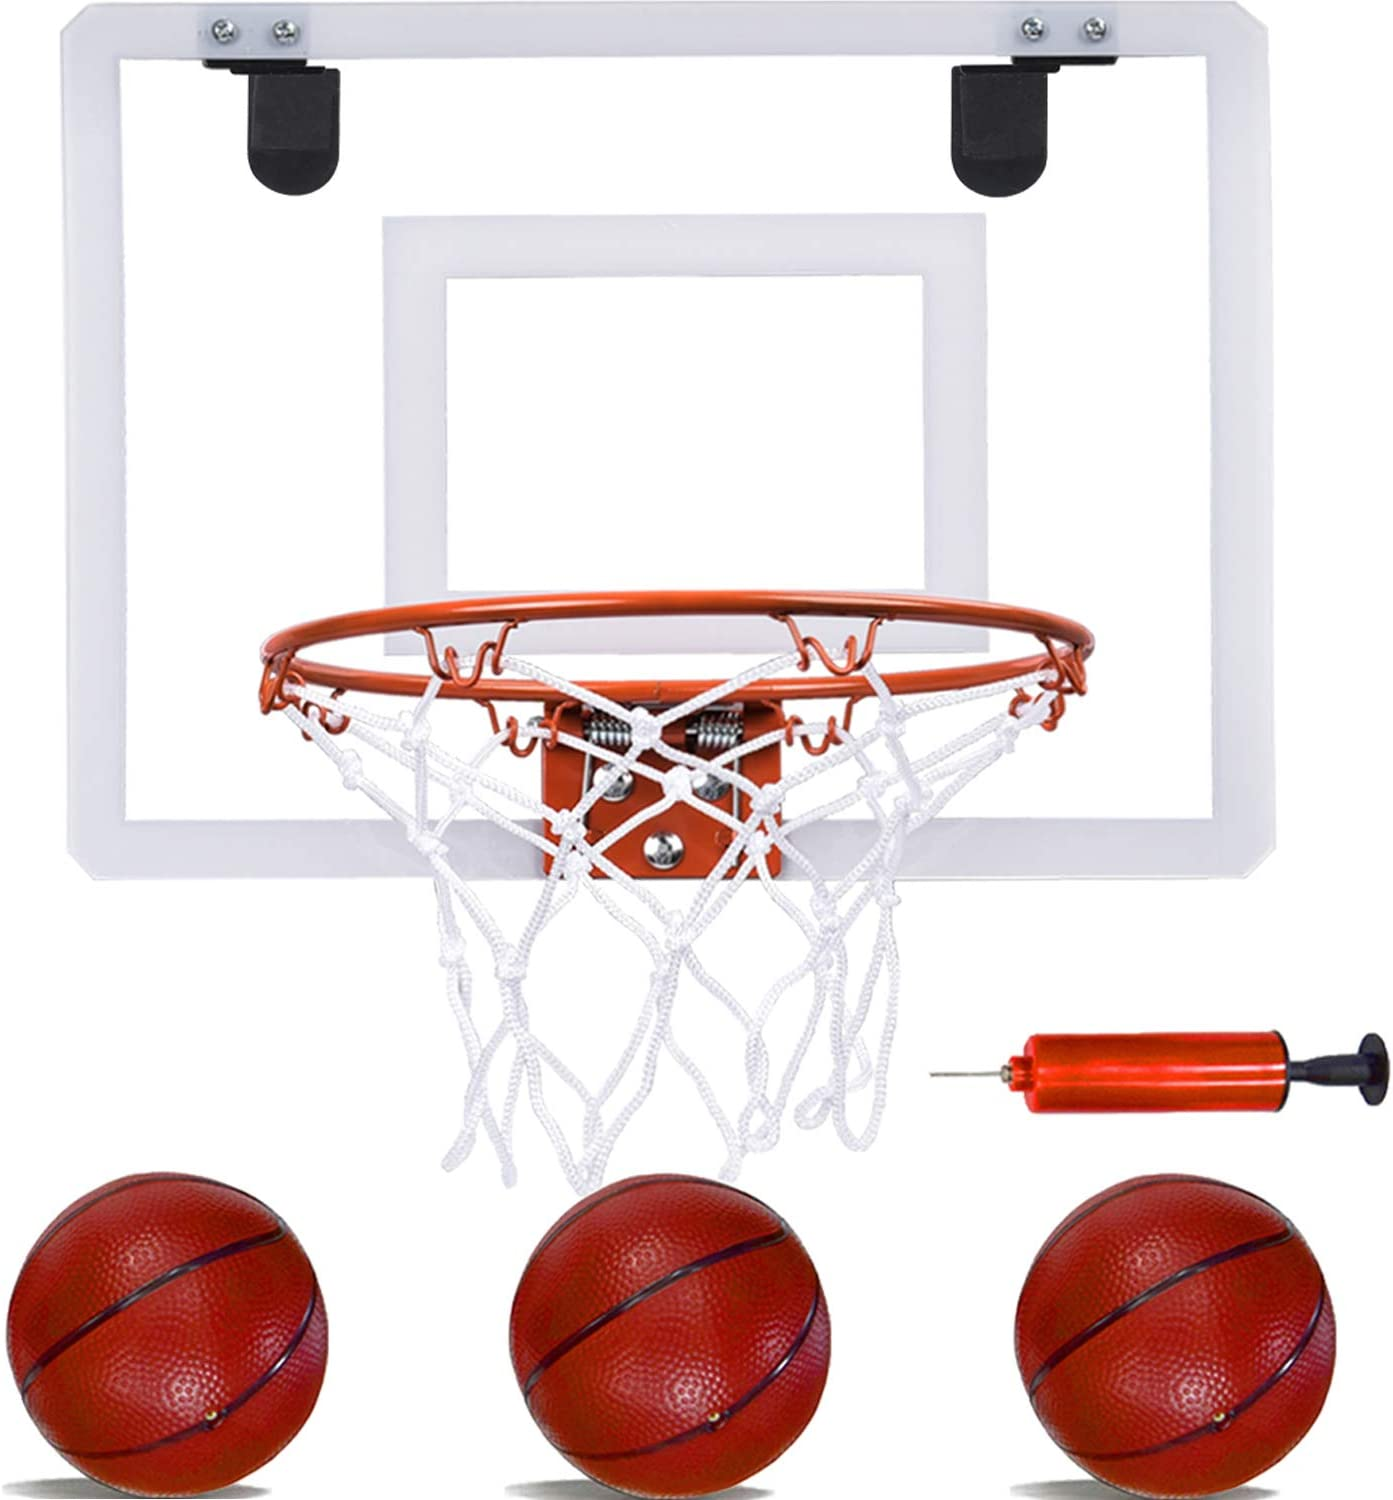 PikDos Indoor Mini Basketball Hoop for Kids and Adult 16 X 12 Inch Board Family Games for Home and Office Door Wall Mount Includes 3 Basketballs and Hand Pump with 1 Inflation Needle